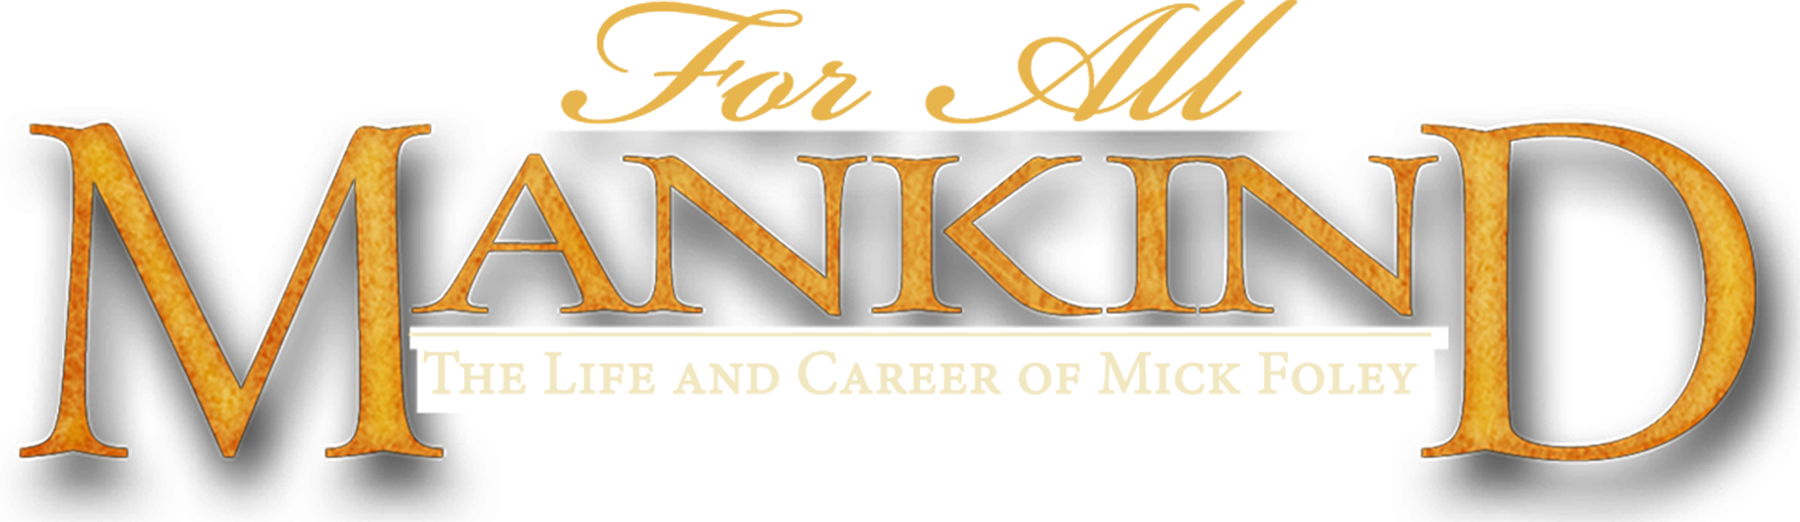 For All Mankind: Life and Career of Mick Foley